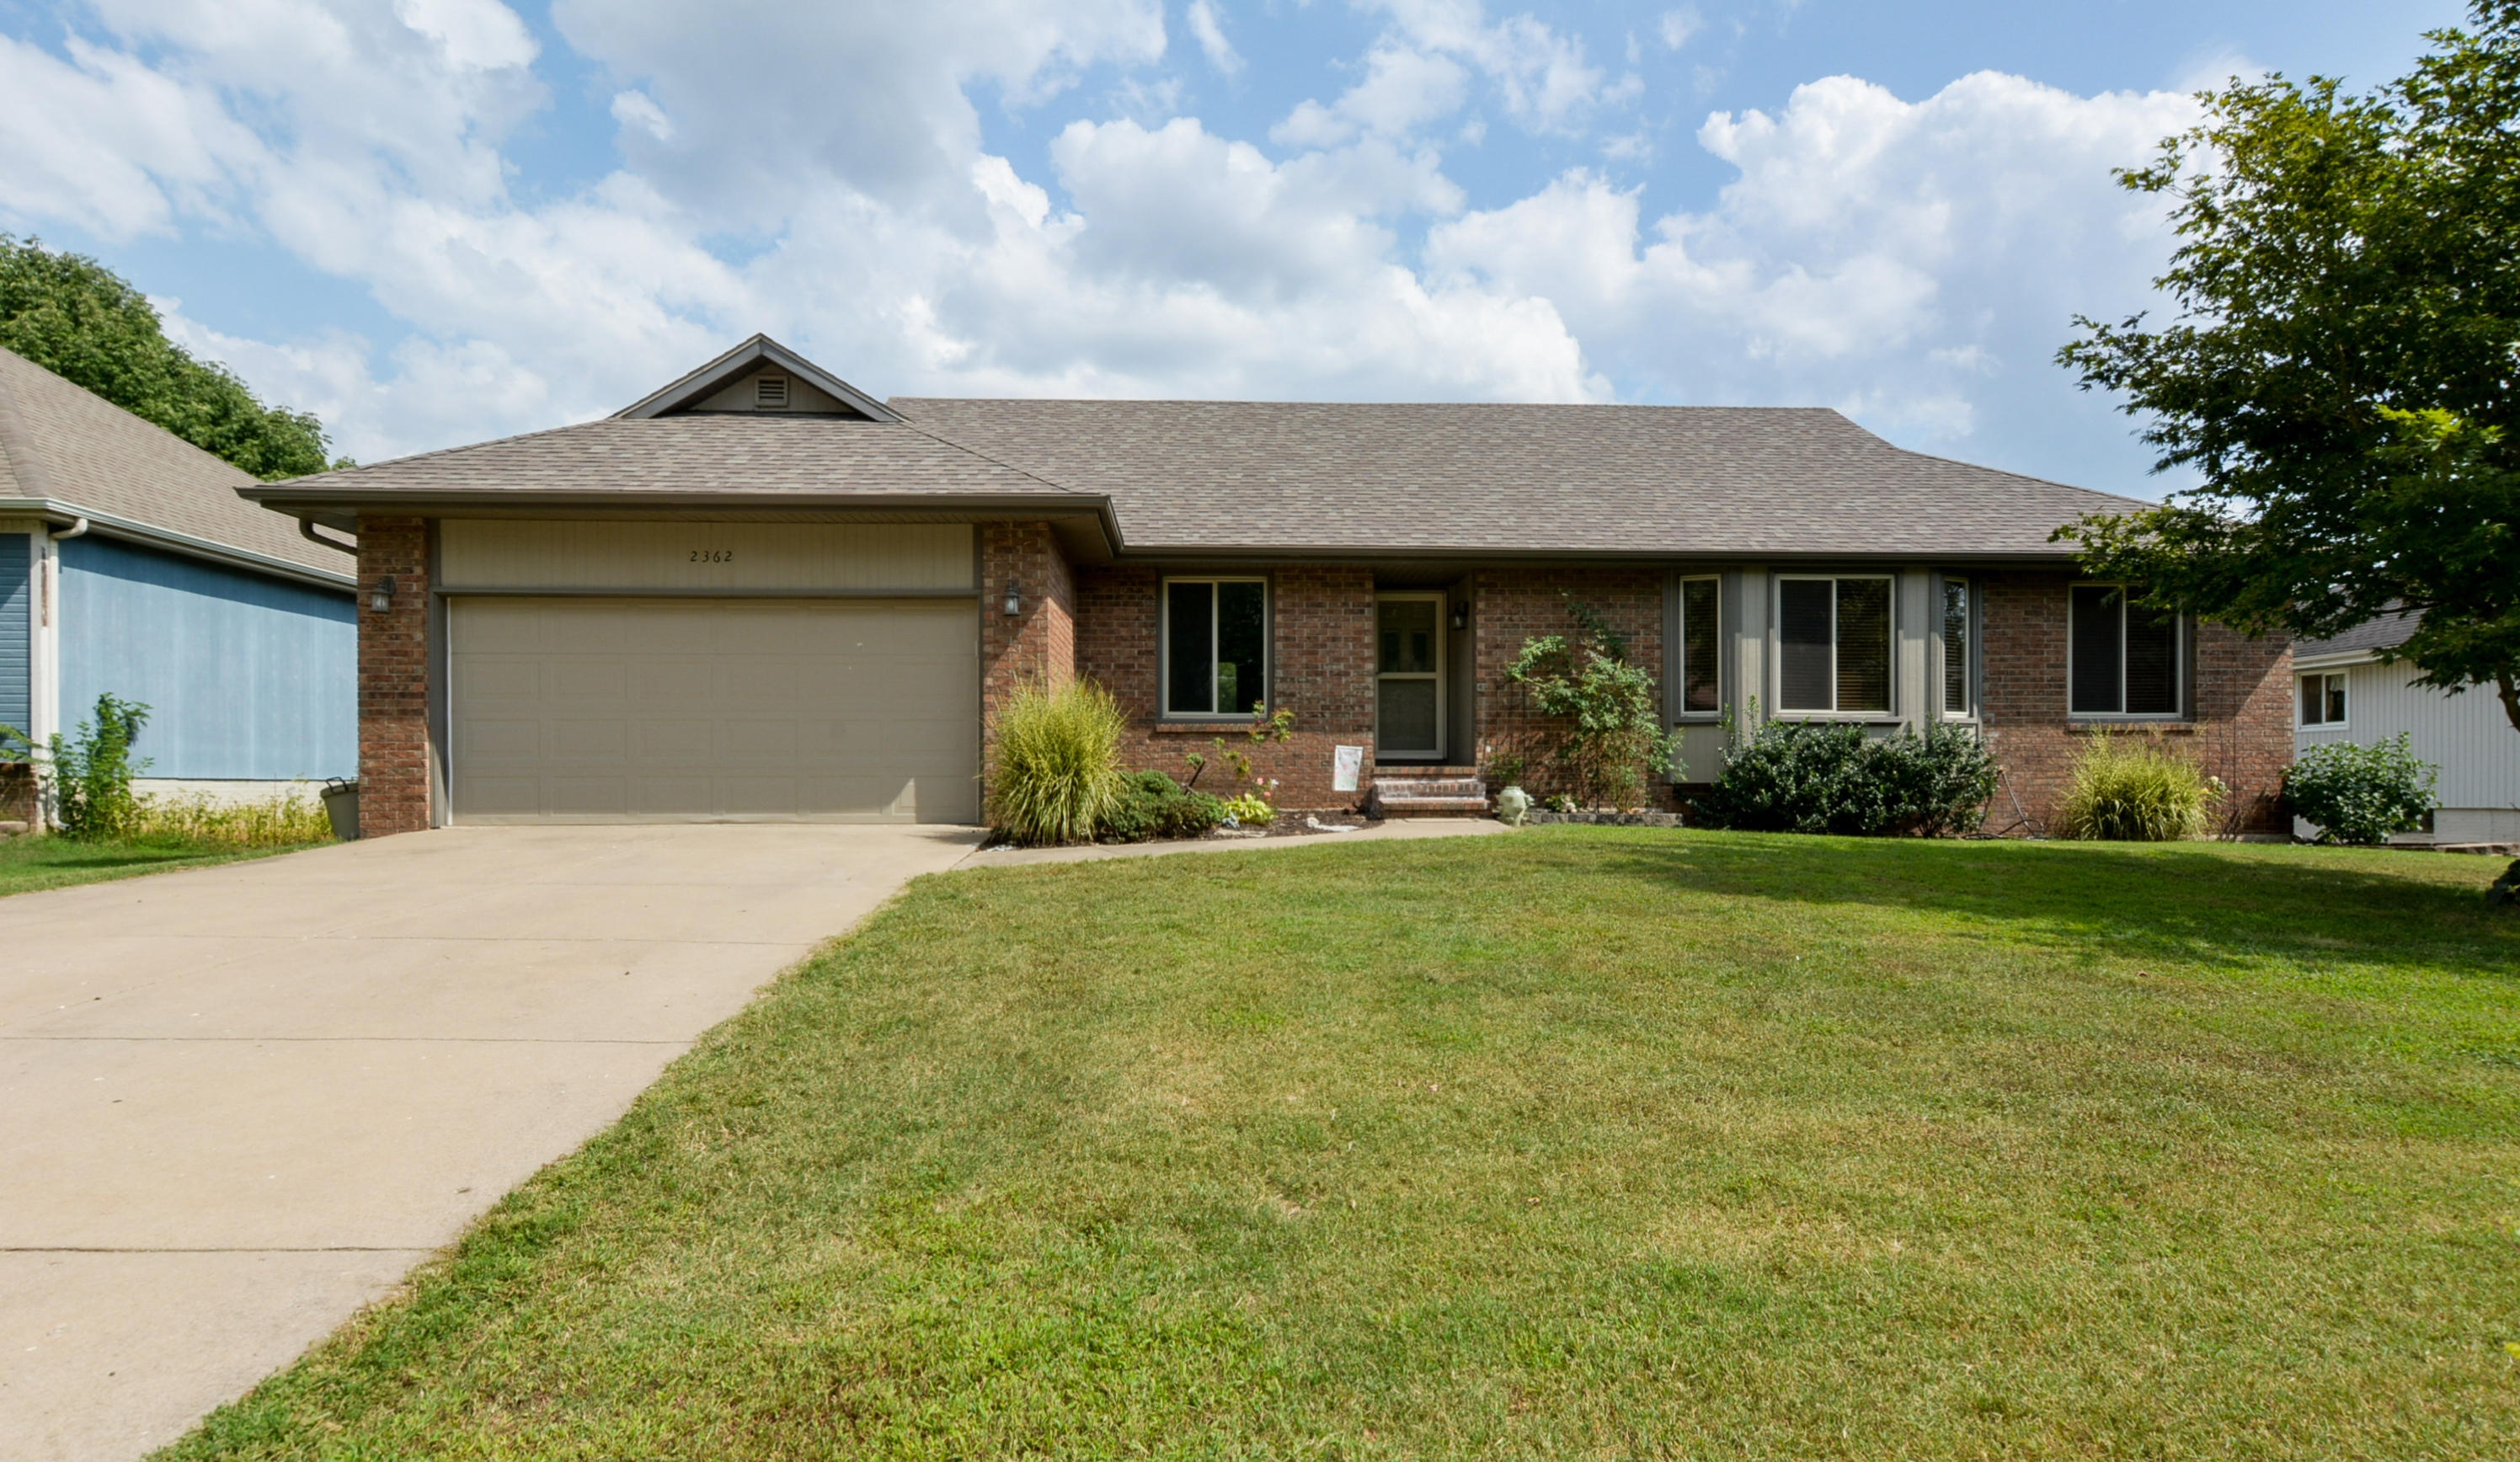 2362 South Nolting Avenue Springfield, MO 65807